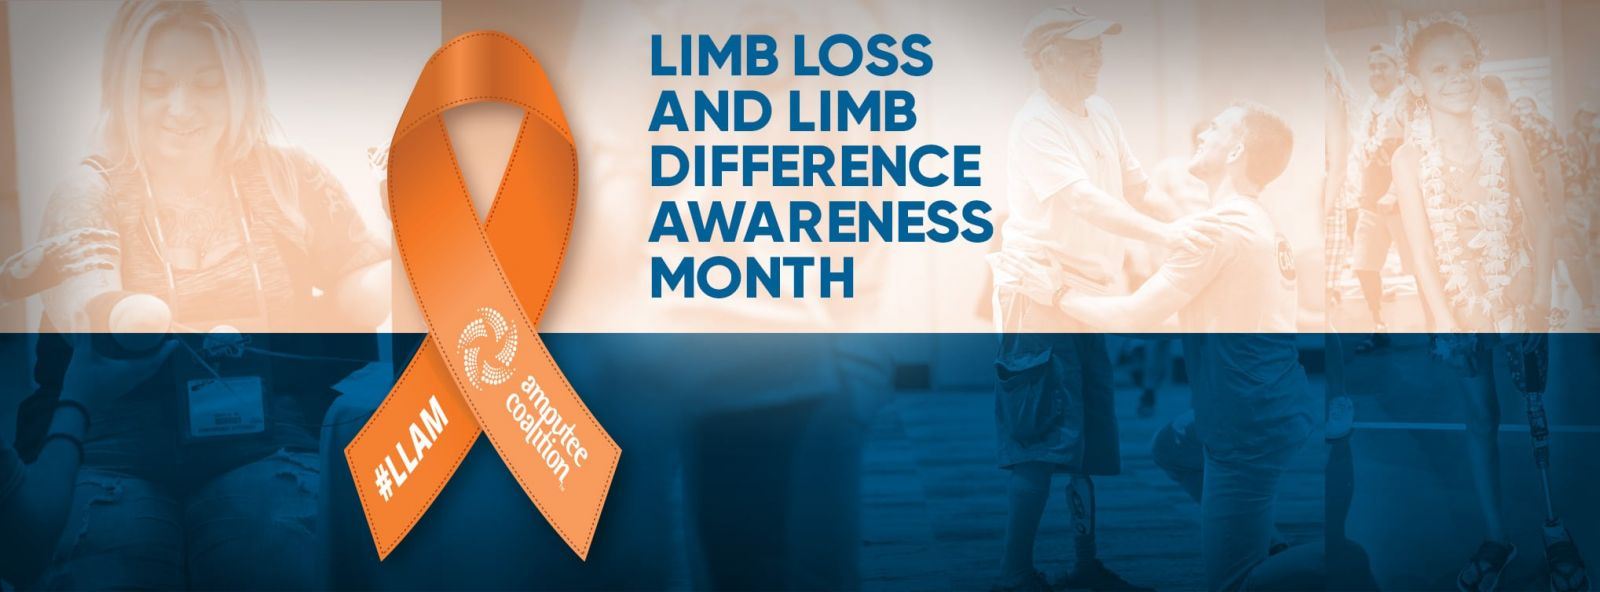 April is Limb Loss and Limb Difference Awareness Month!